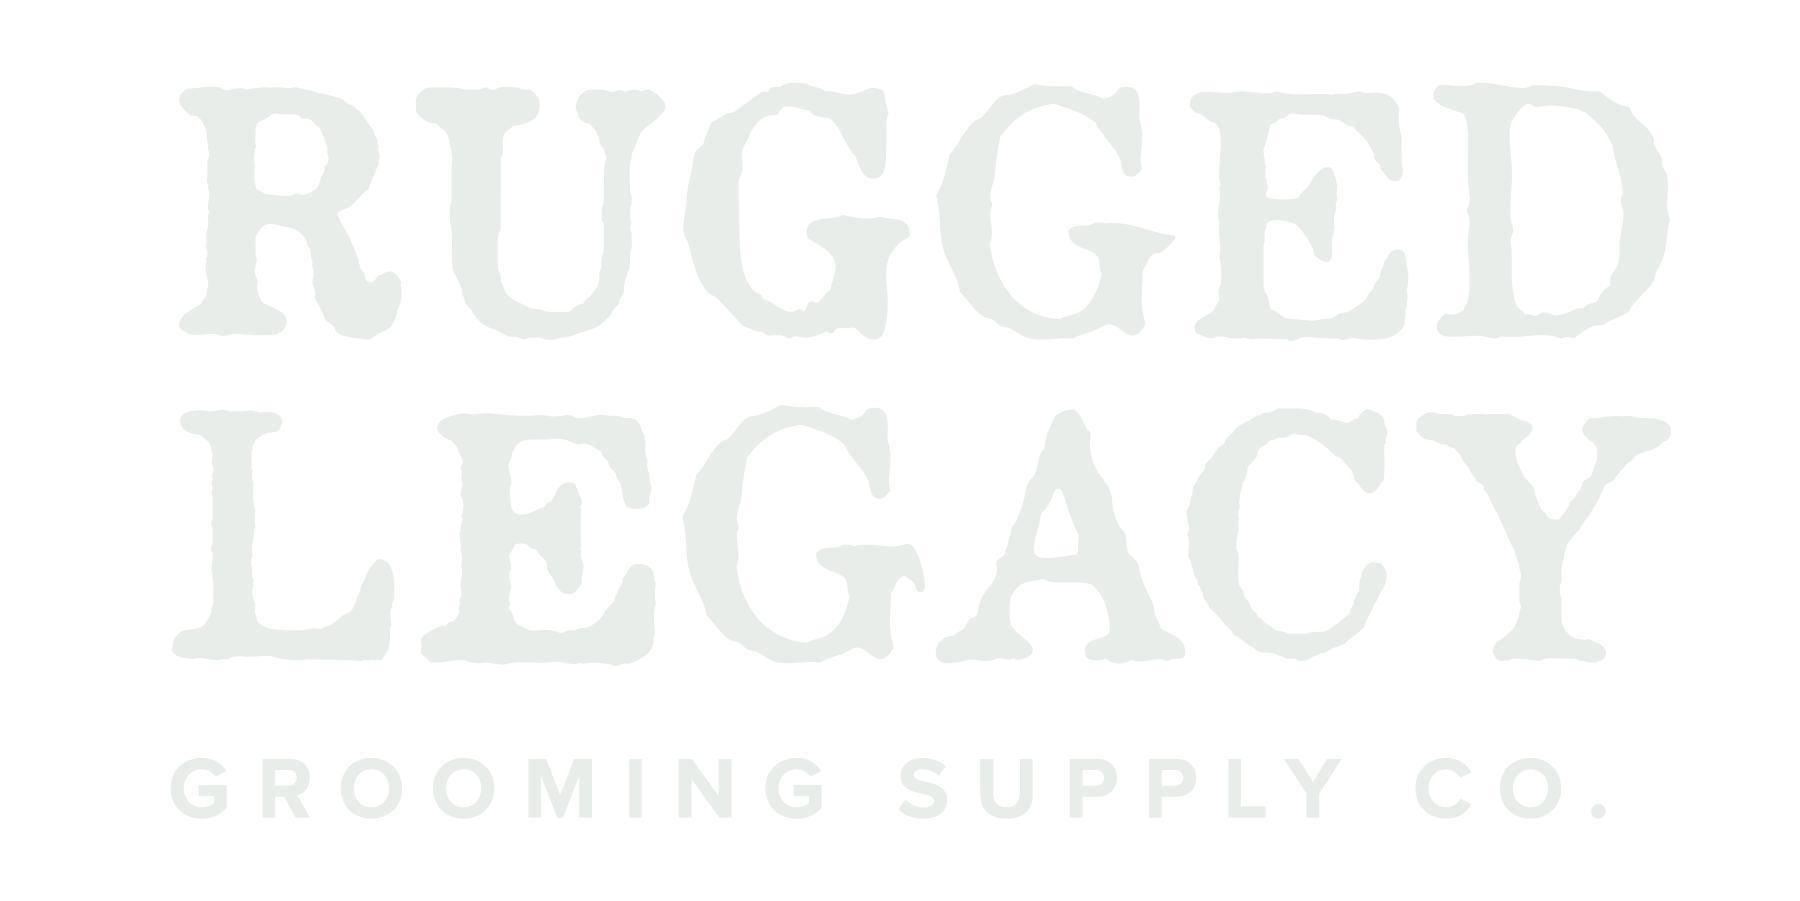 RuggedLegacy_Wordmark_White